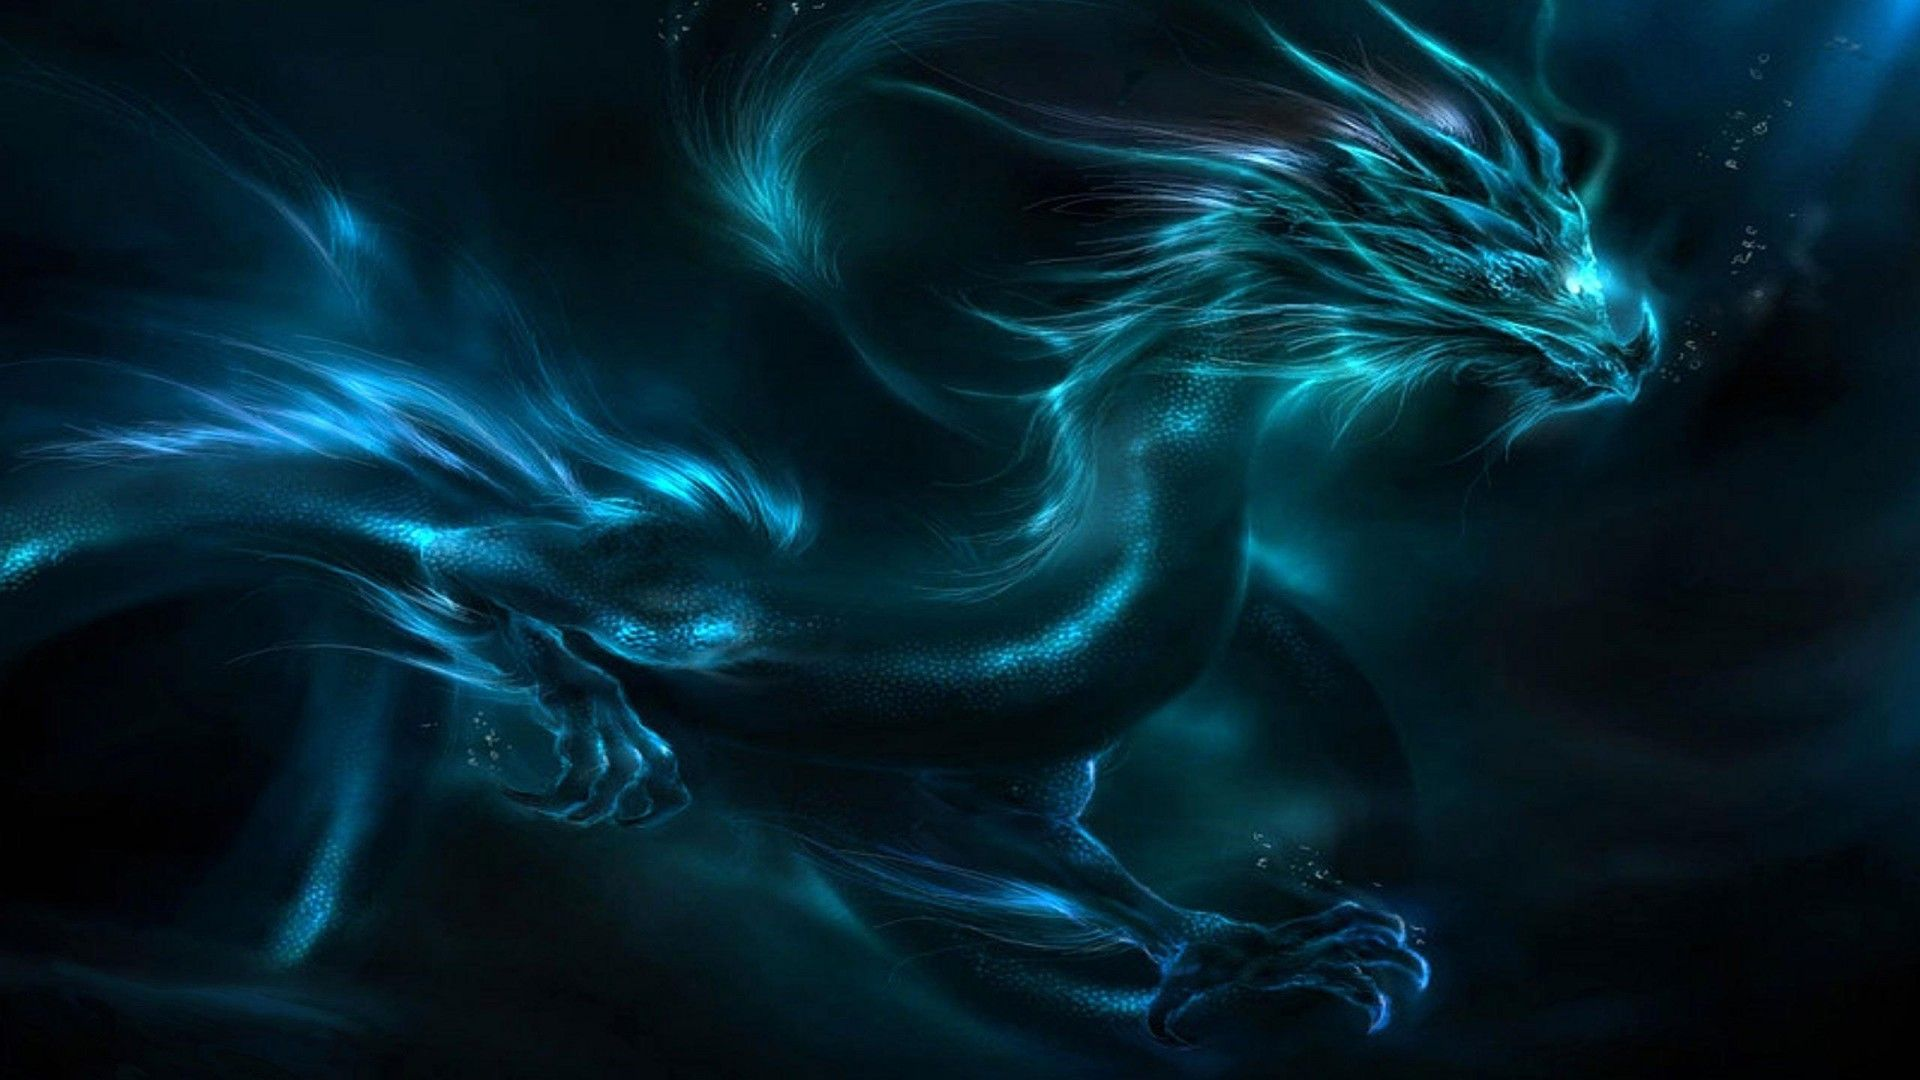 Beautiful Dragon Wallpaper 1920x1080 Laptop Dragon Pictures Dragon Images Shadow Dragon